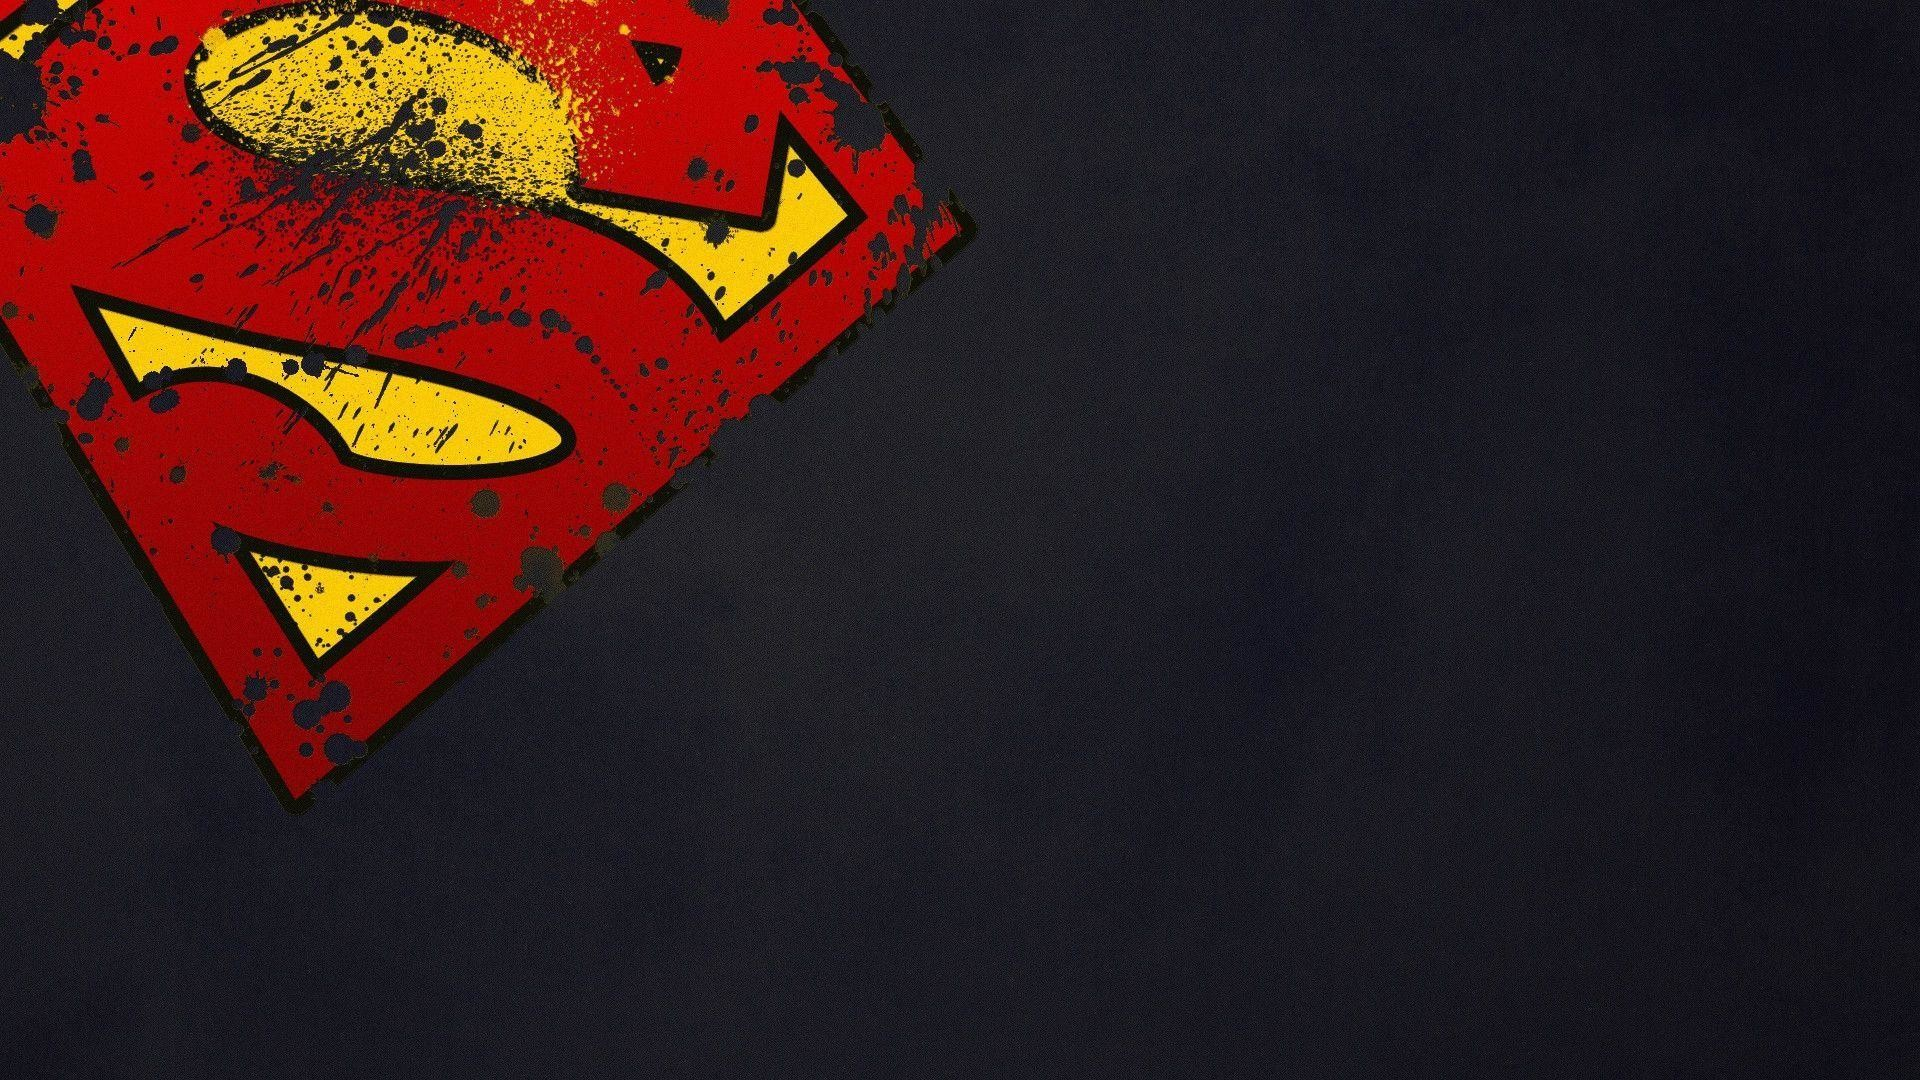 1920x1080 Superhero Logos Wallpaper Images & Pictures - Becuo